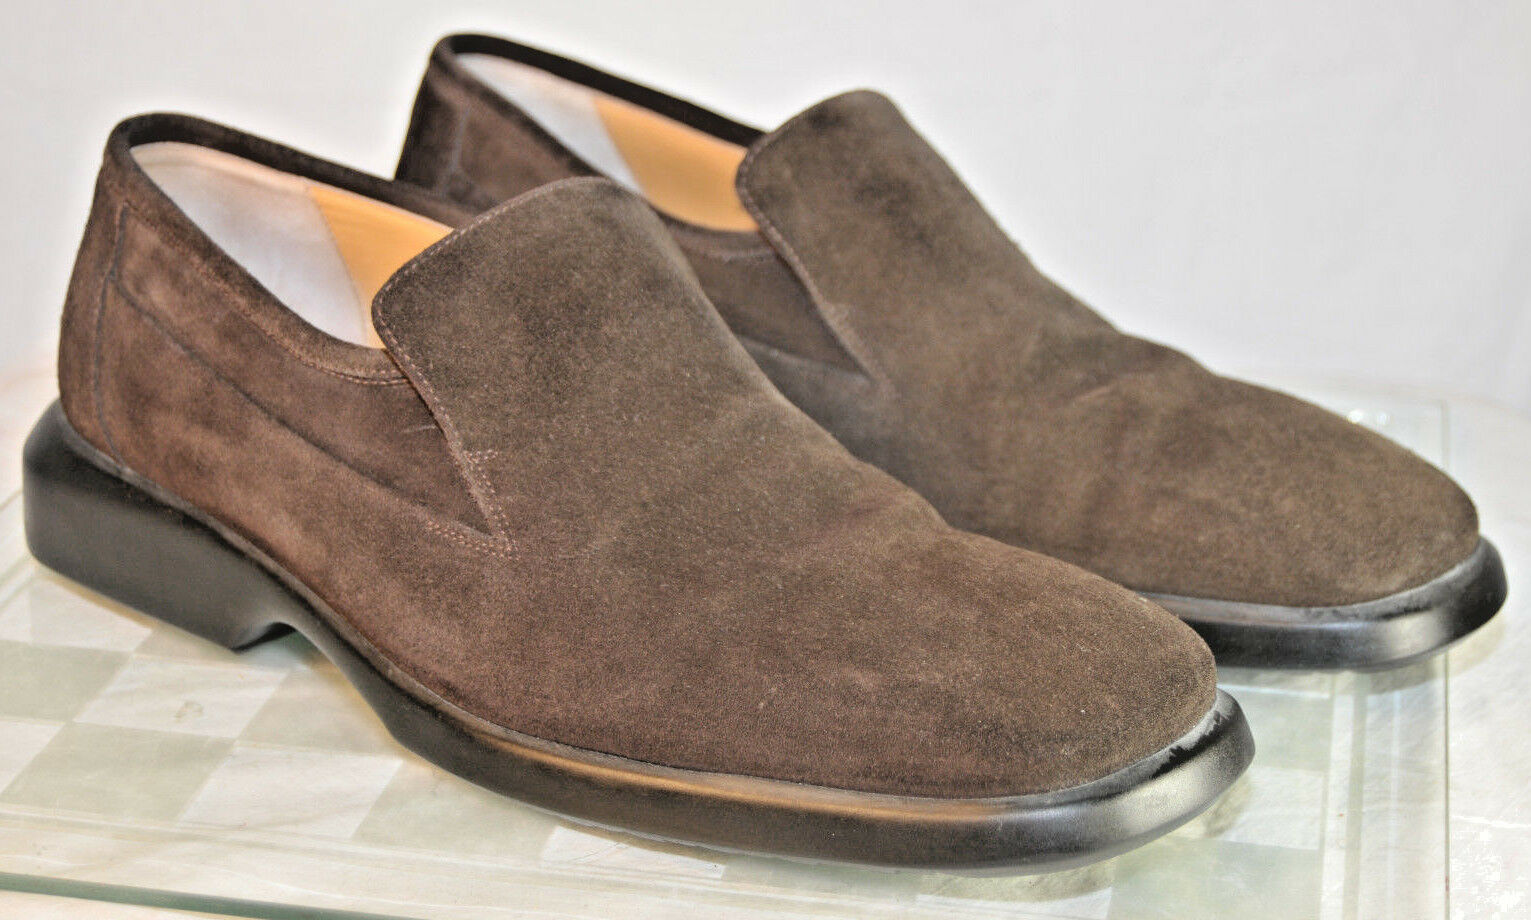 BALLY MEN'S Dark Brown Suede LOAFERS SIZE 10.5 D